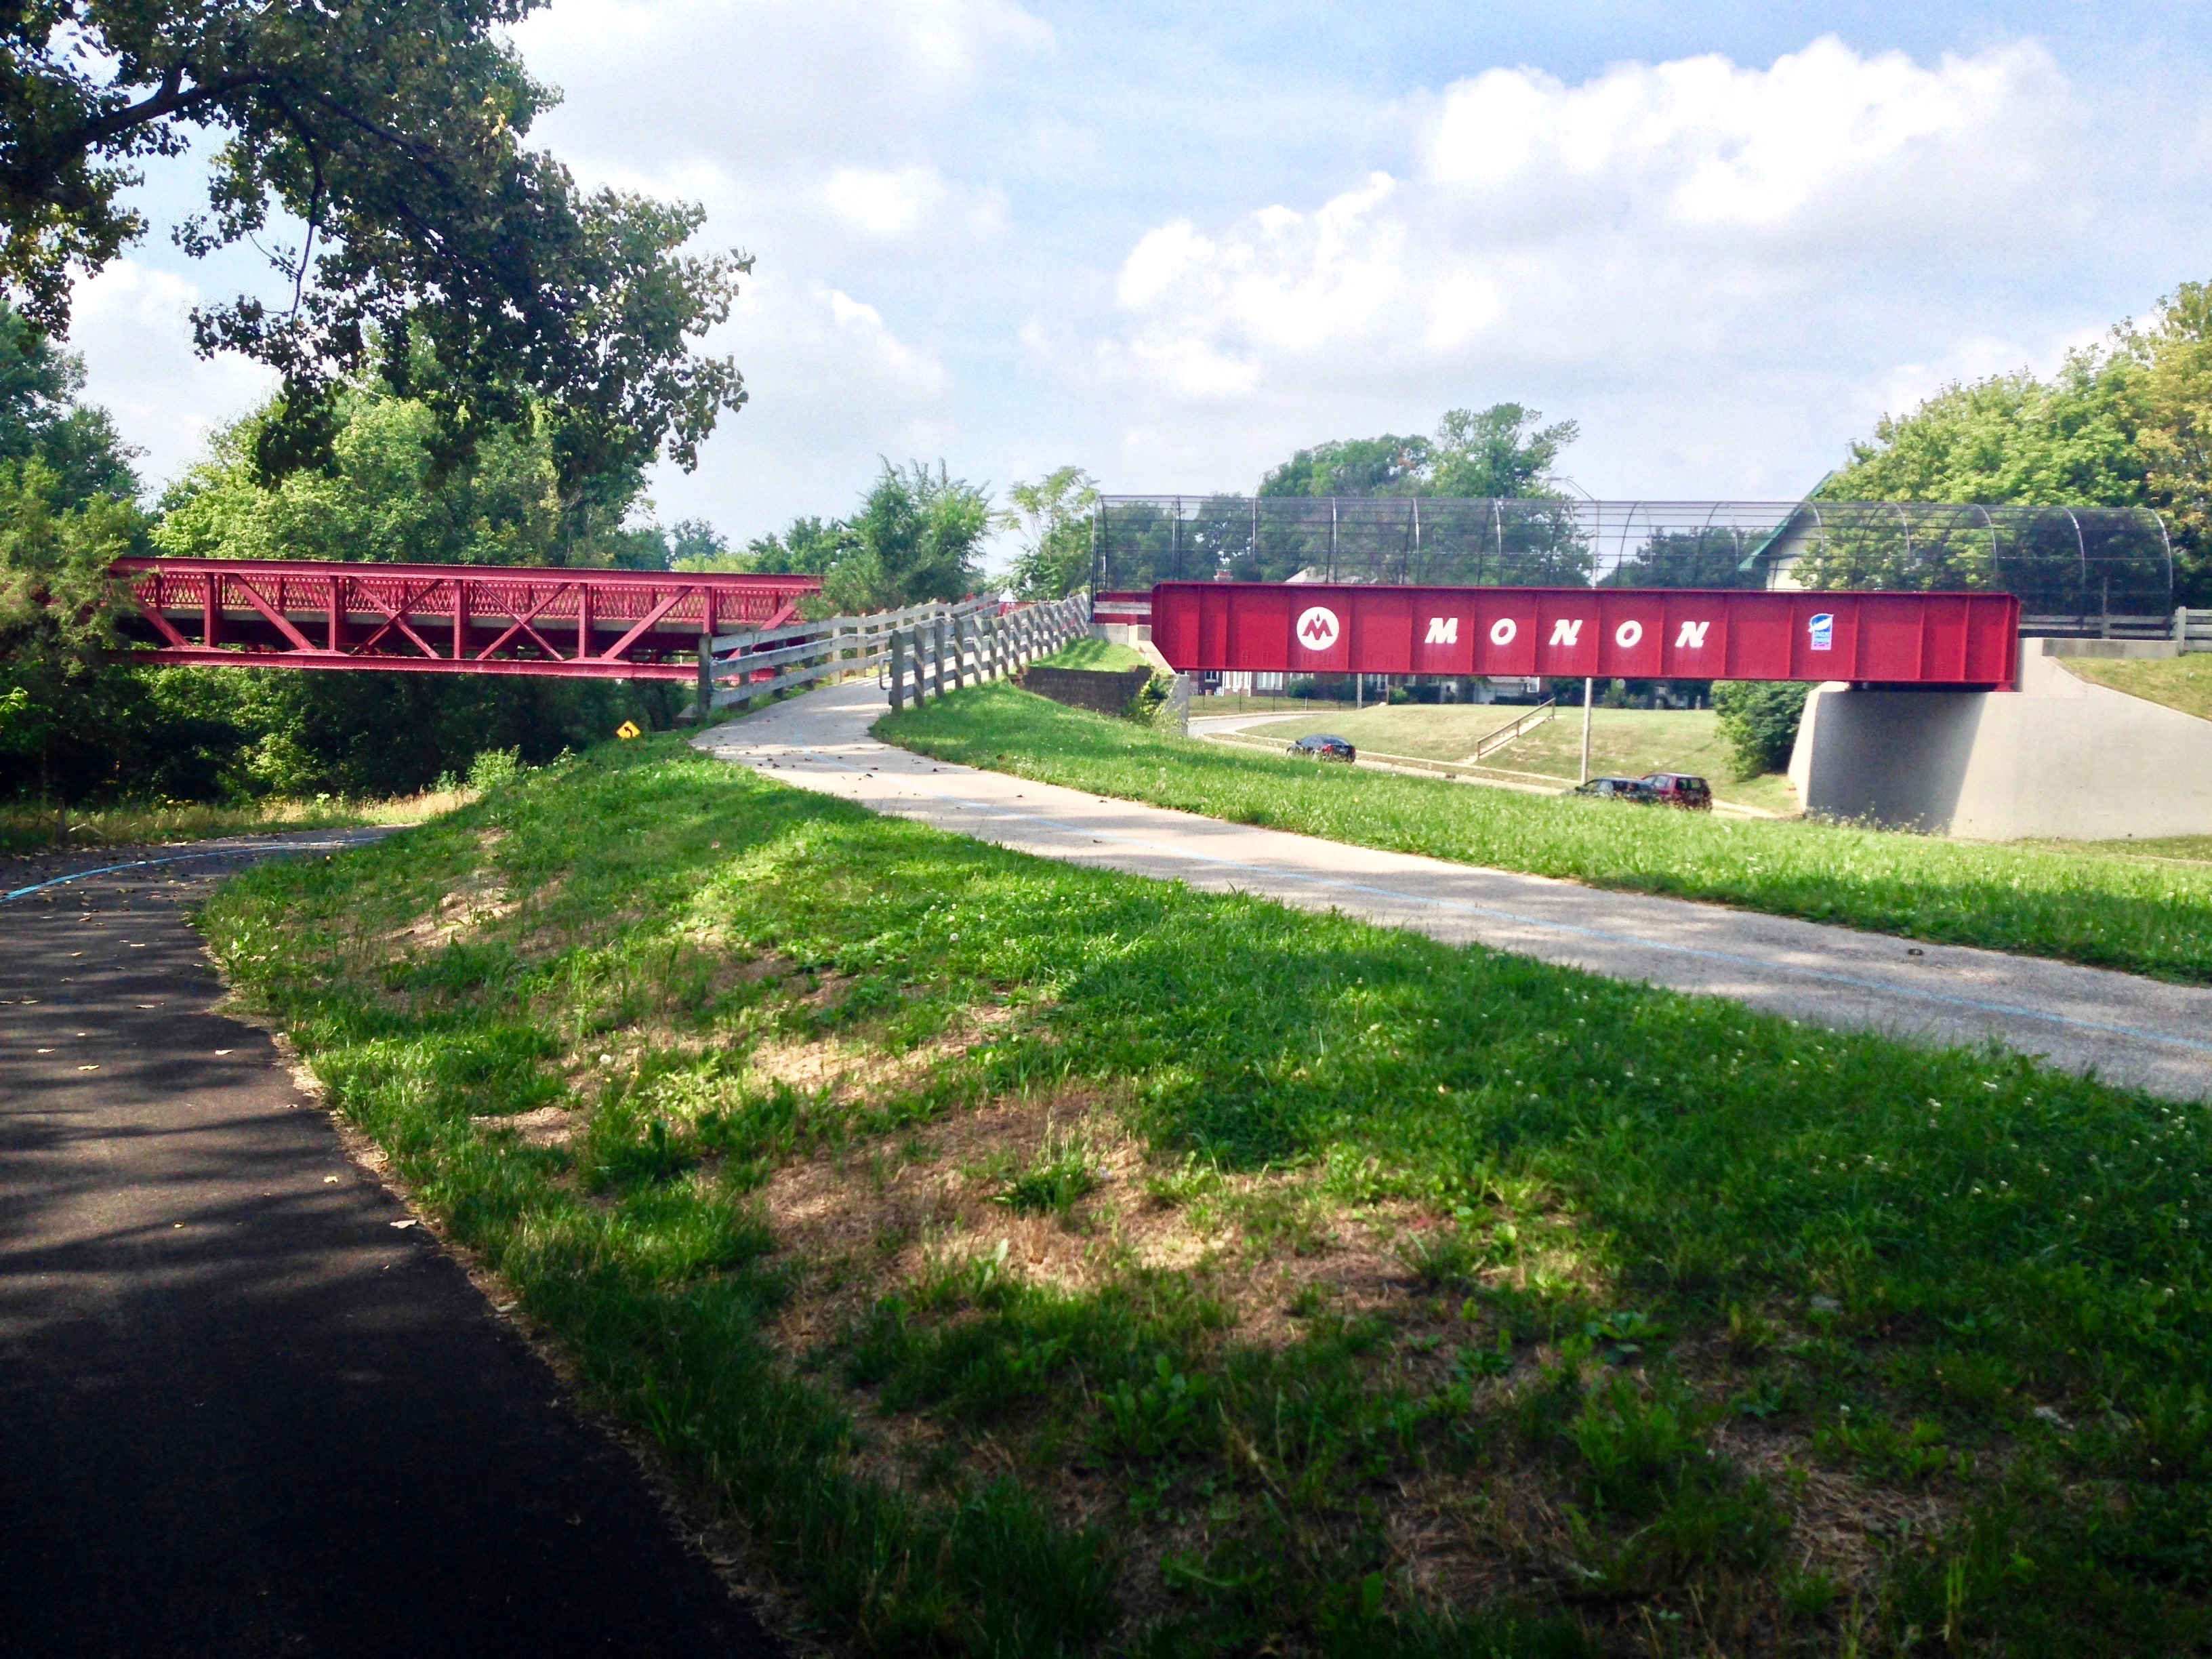 Monon_Trail_bridge_in_Indianapolis.jpg